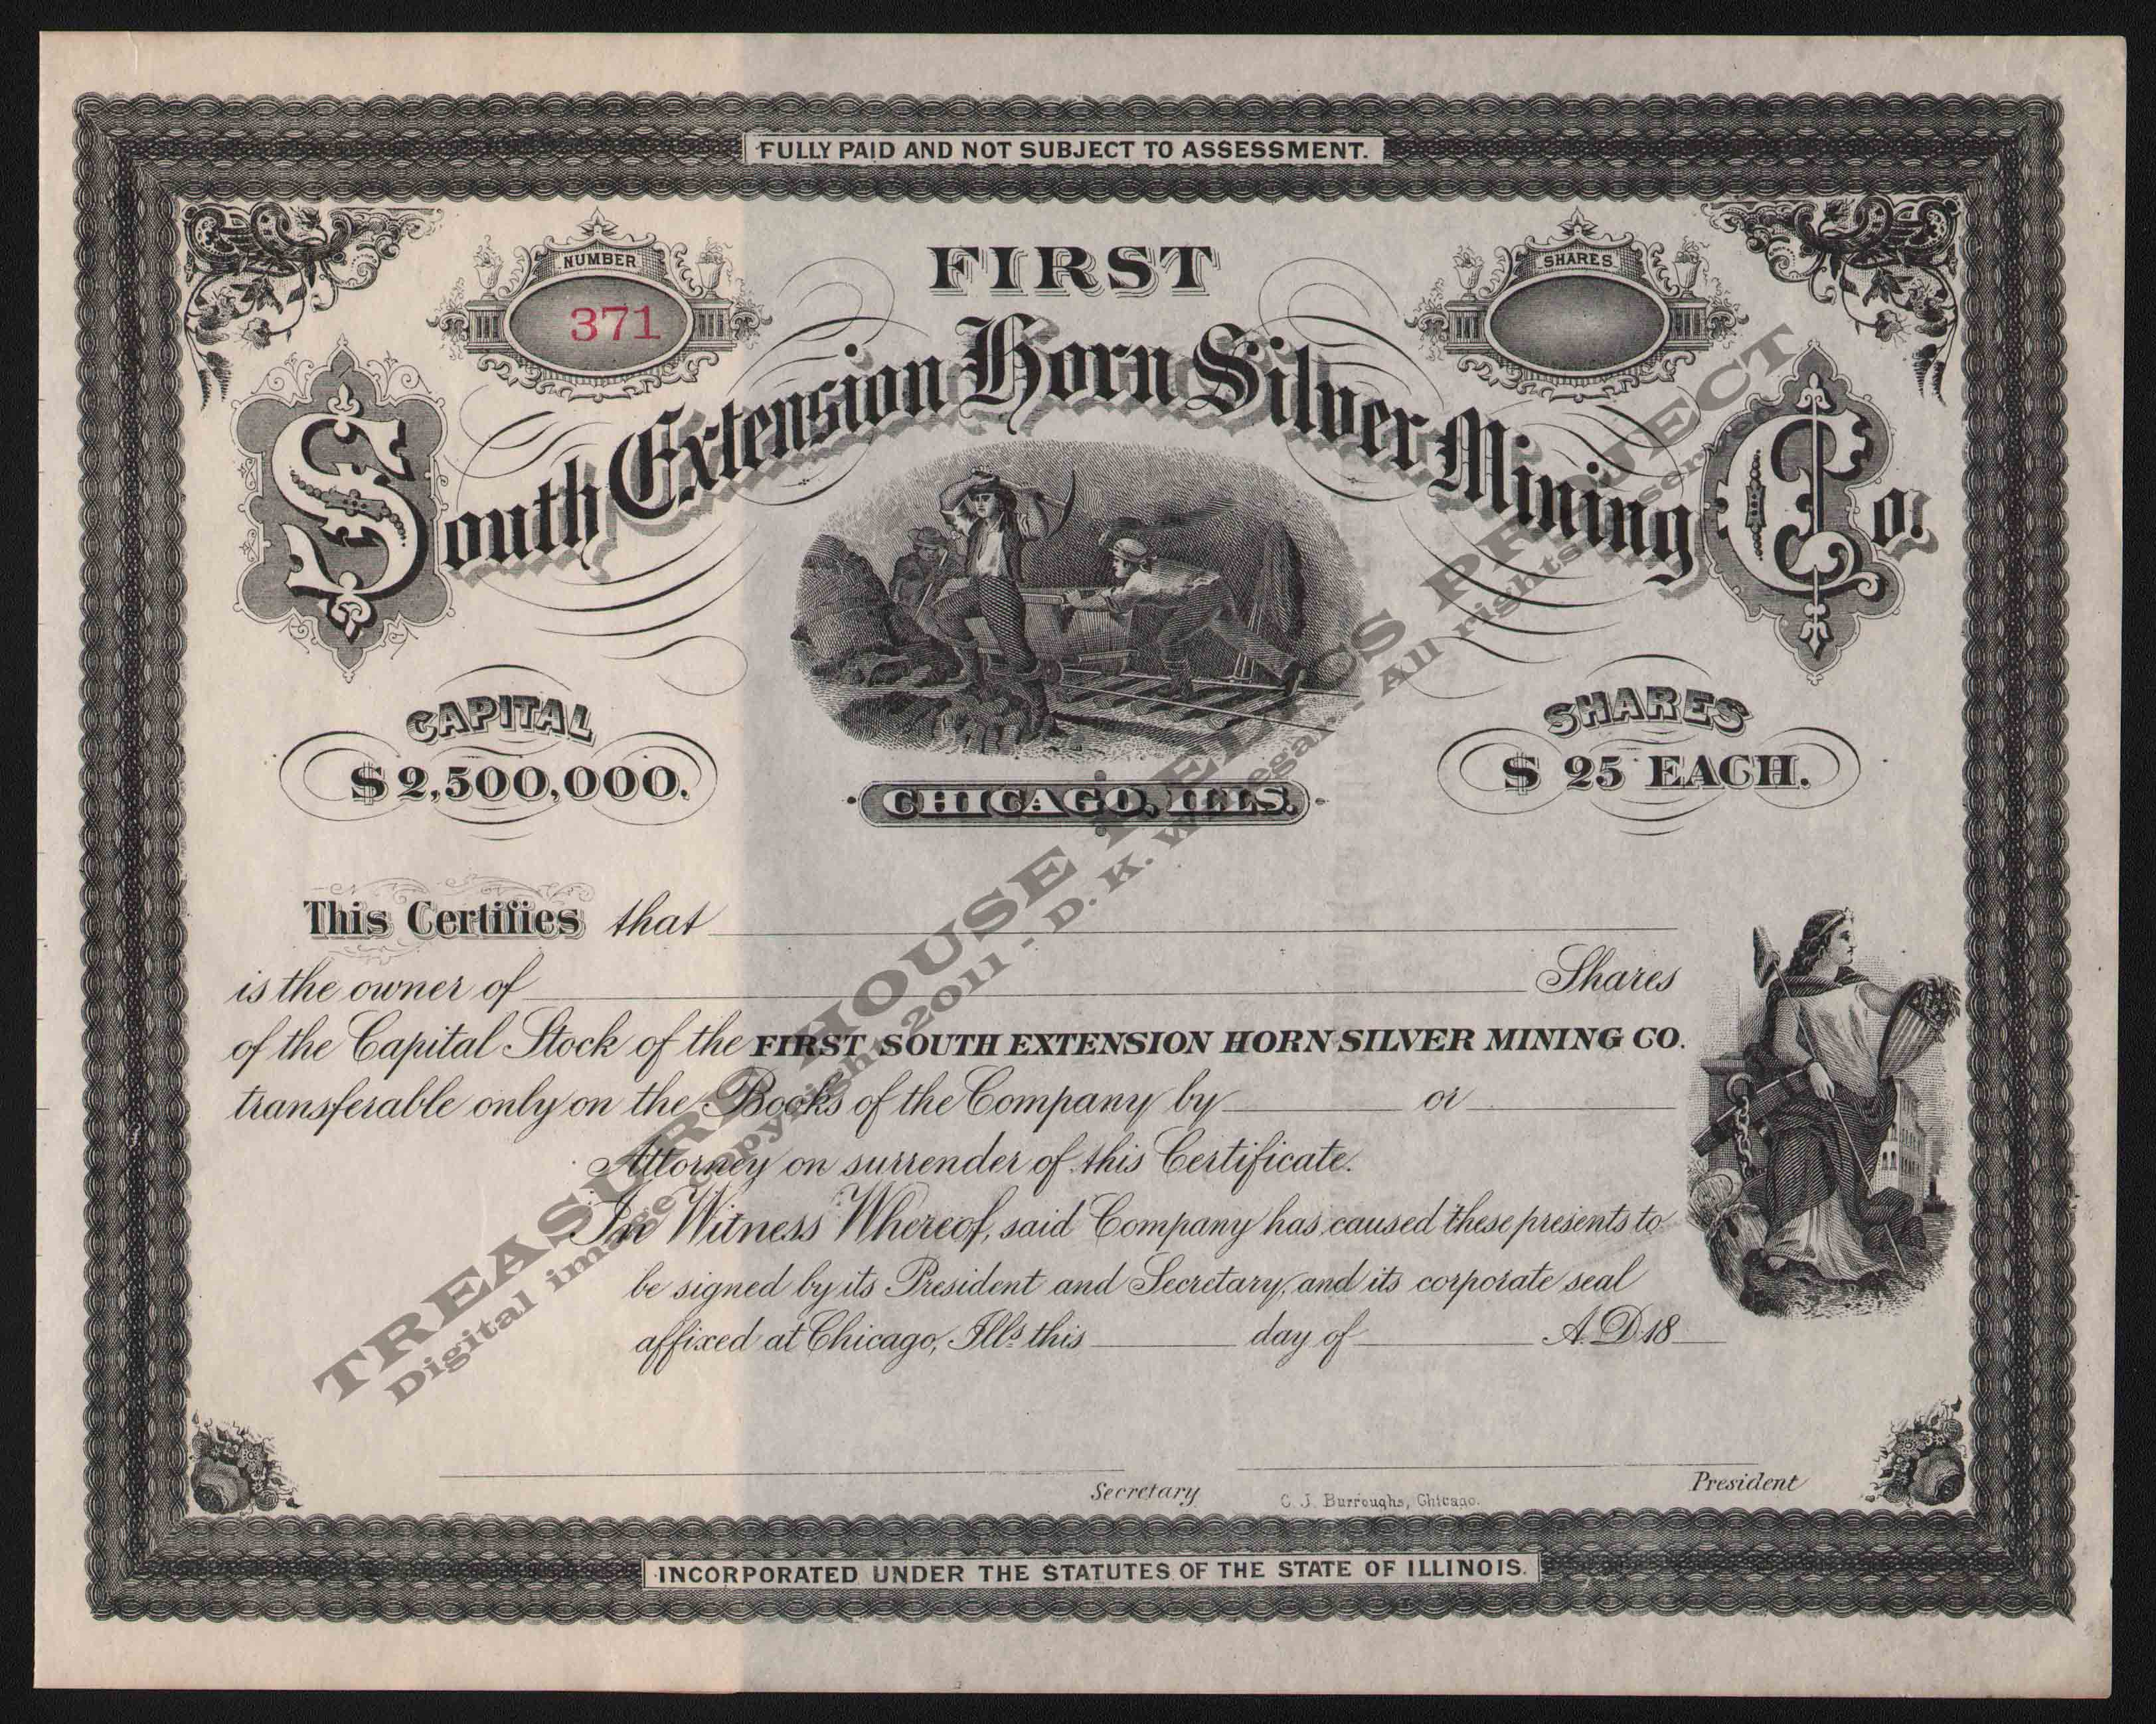 FIRST_SOUTH_EXTENSION_HORN_SILVER_MINING_COMPANY_371_300_EMBOSS.jpg